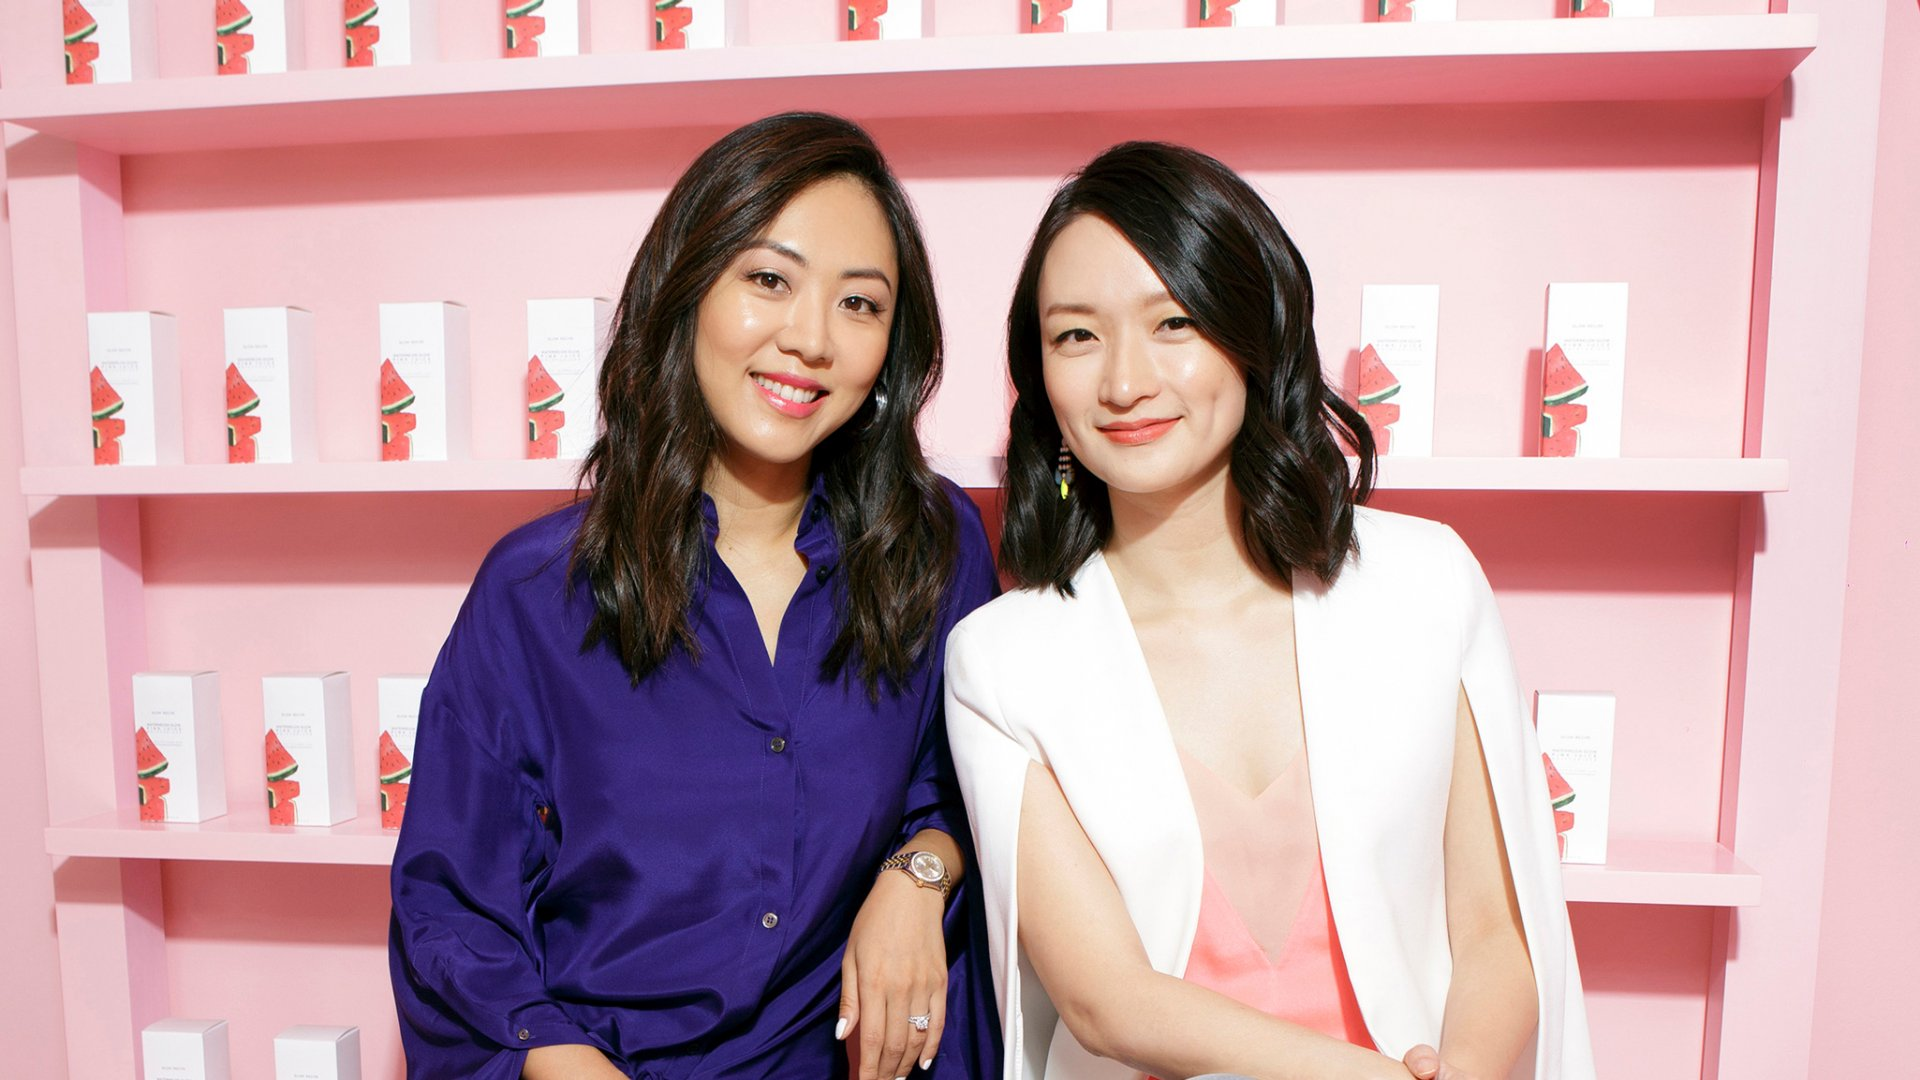 Sarah Lee (left) and Christine Chang, co-founders of Glow Recipe.